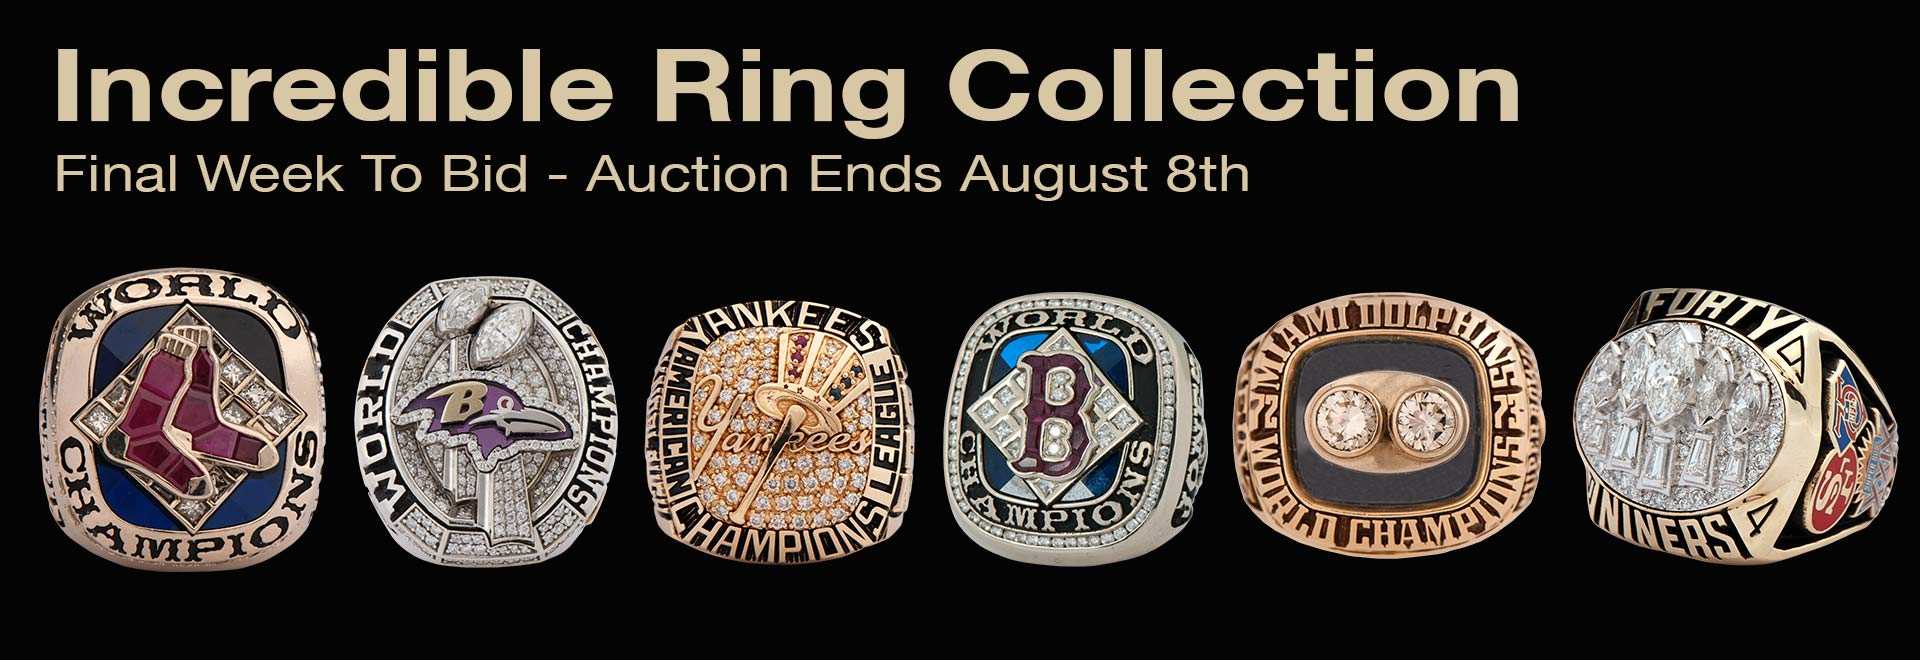 Incredible Championship Ring Collection Starting with lot 16